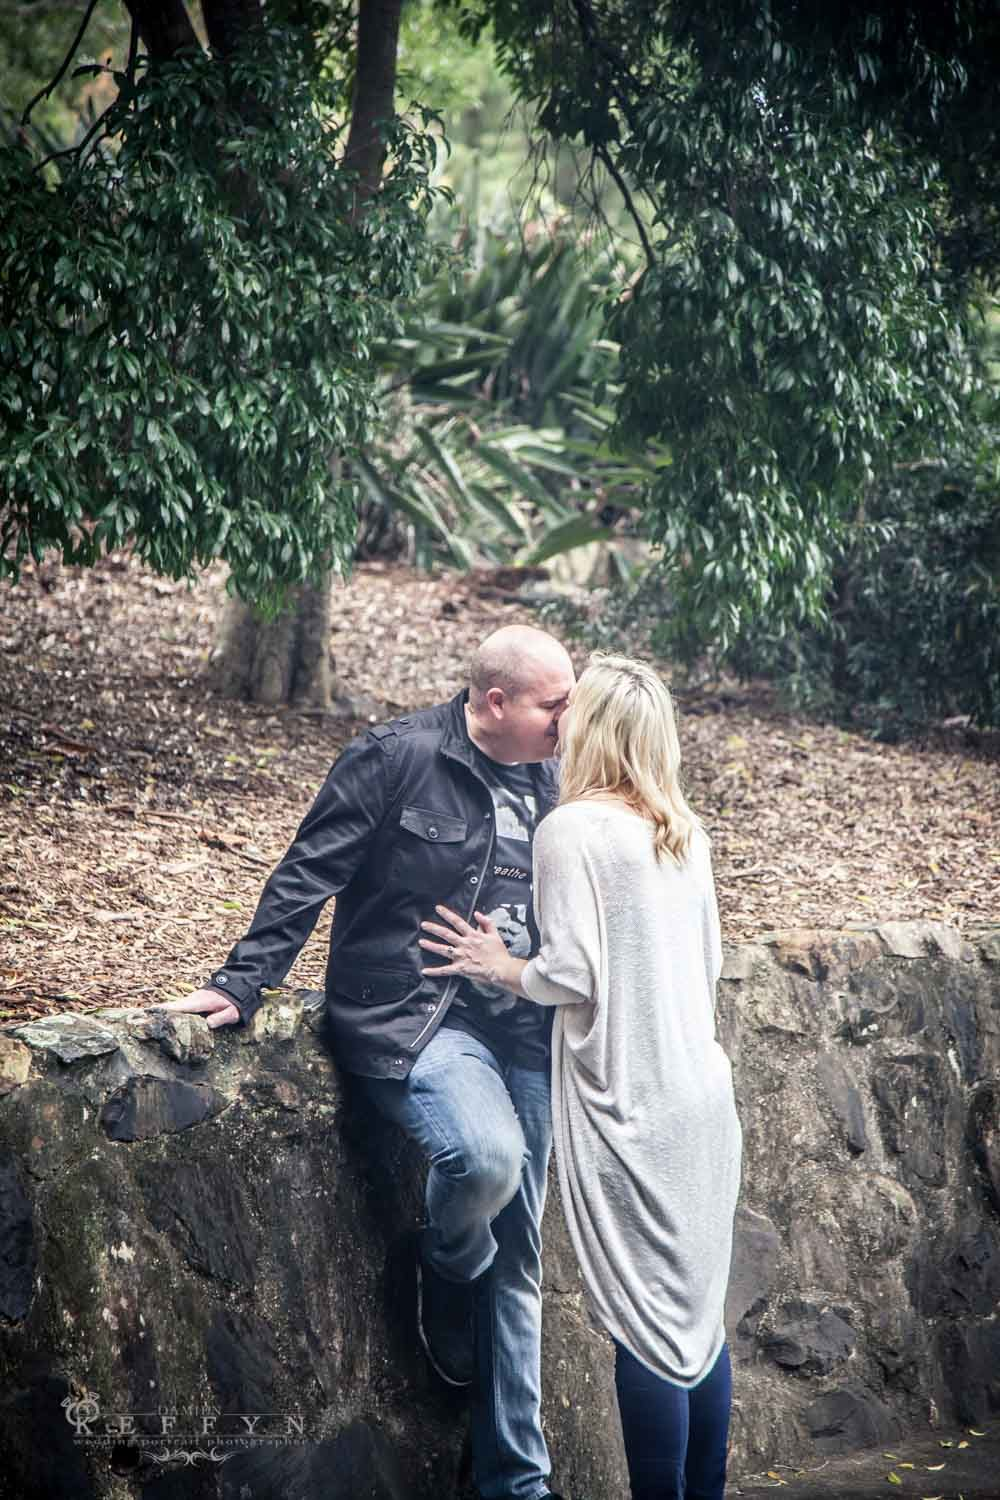 Engagement photography Botanical Gardens Australia, Sunshine Coast, Gold Coast, Brisbane, Wedding Portrait Maternity Family Photographer Damien Keffyn AIPP